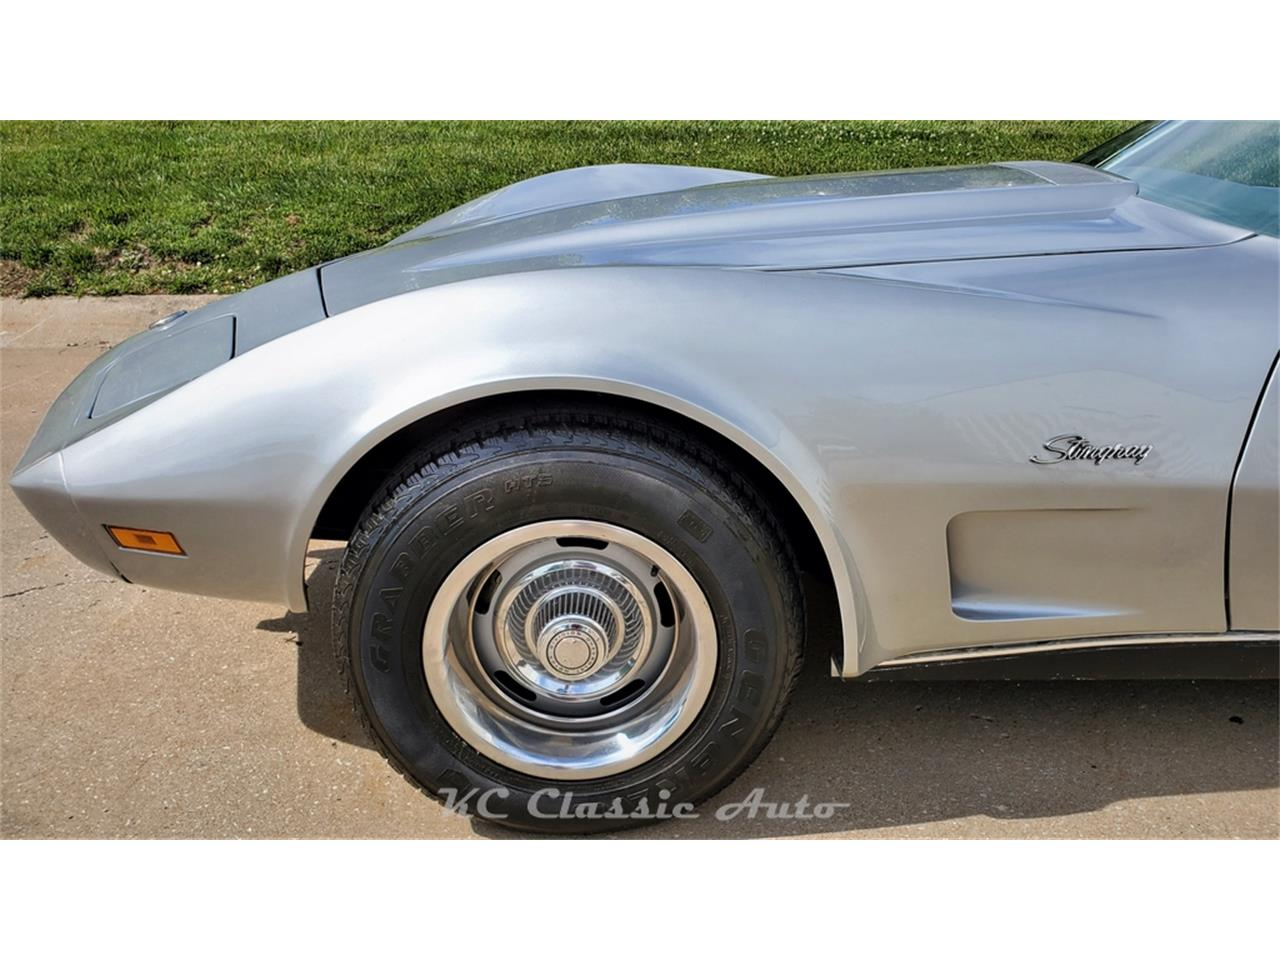 1975 Chevrolet Corvette (CC-1358095) for sale in Lenexa, Kansas